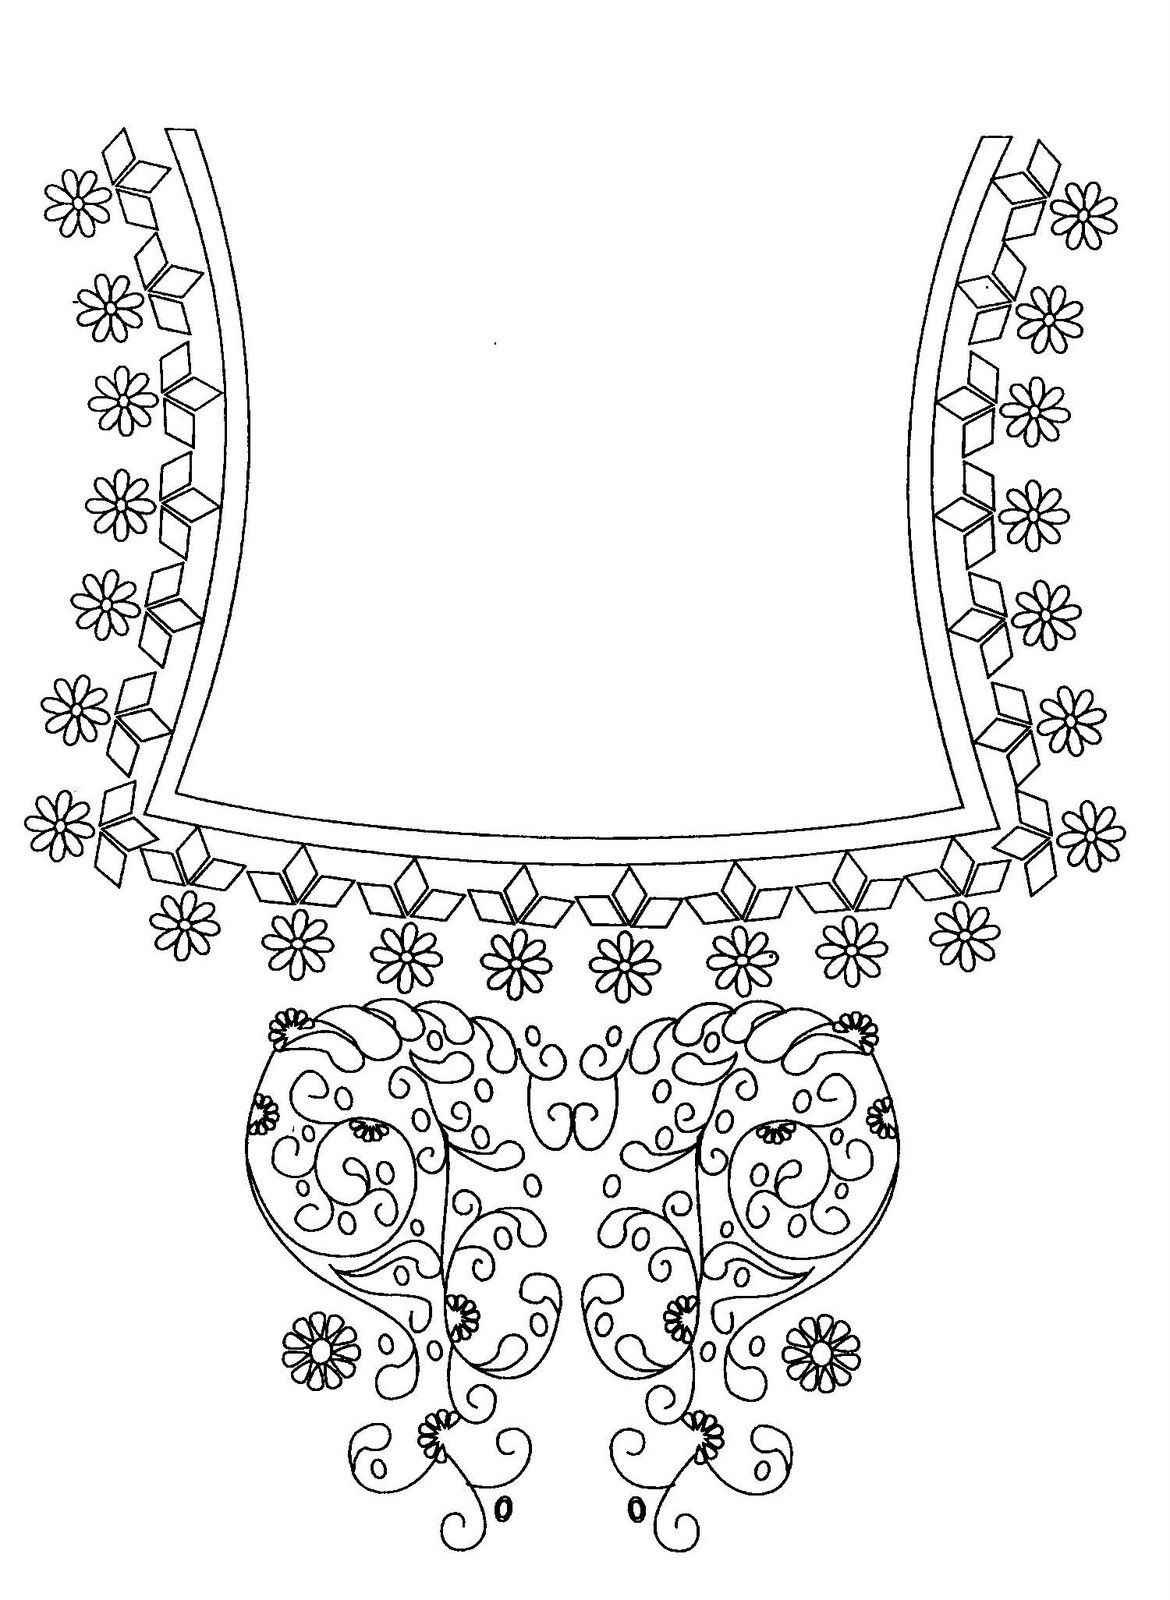 Lady craft embroidery designs riscos para roupas pinterest